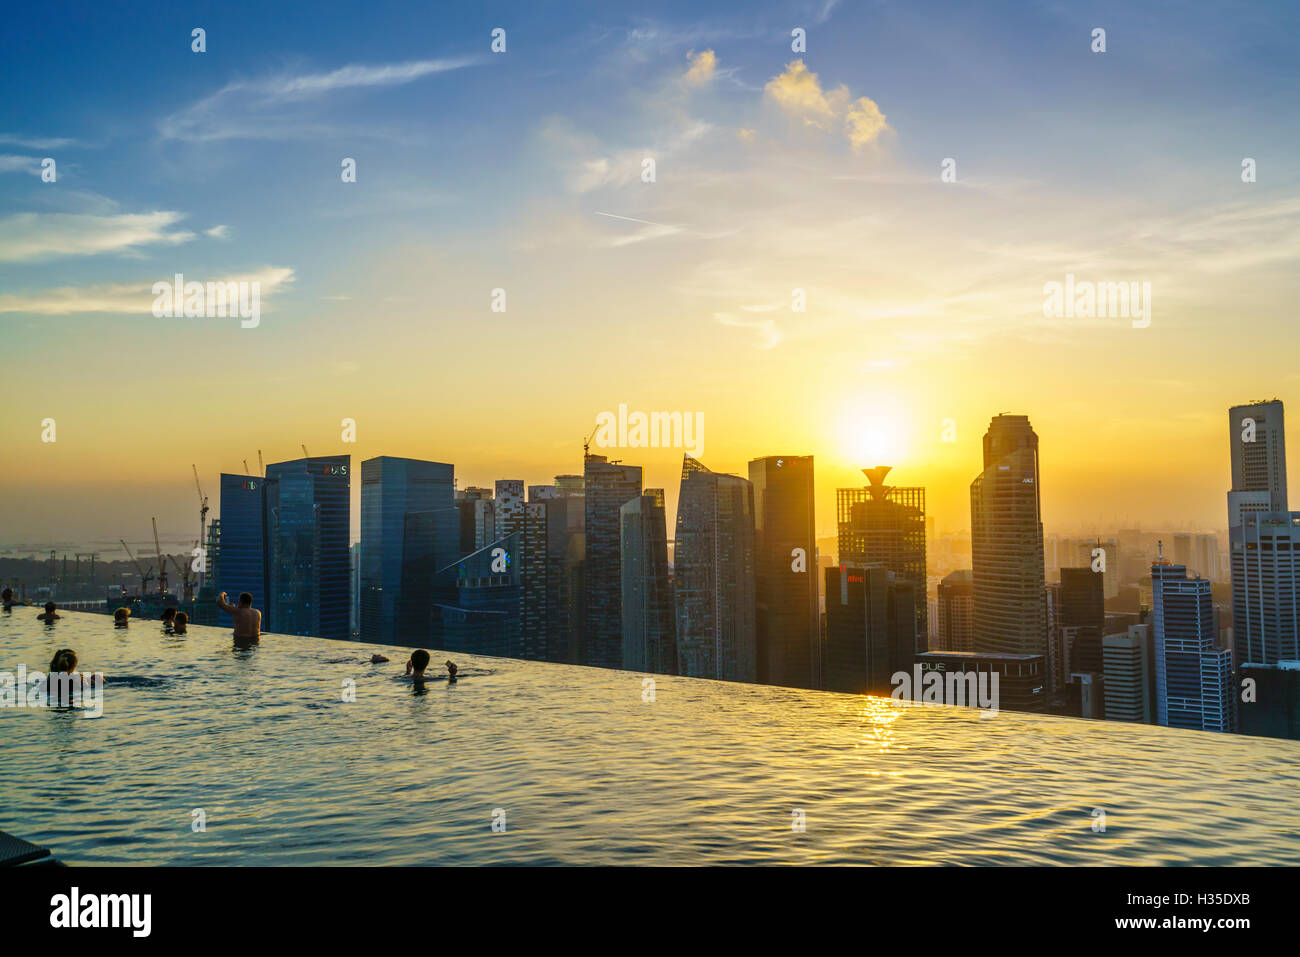 Infinity pool on the roof of the Marina Bay Sands Hotel with spectacular views over the Singapore skyline at sunset, - Stock Image